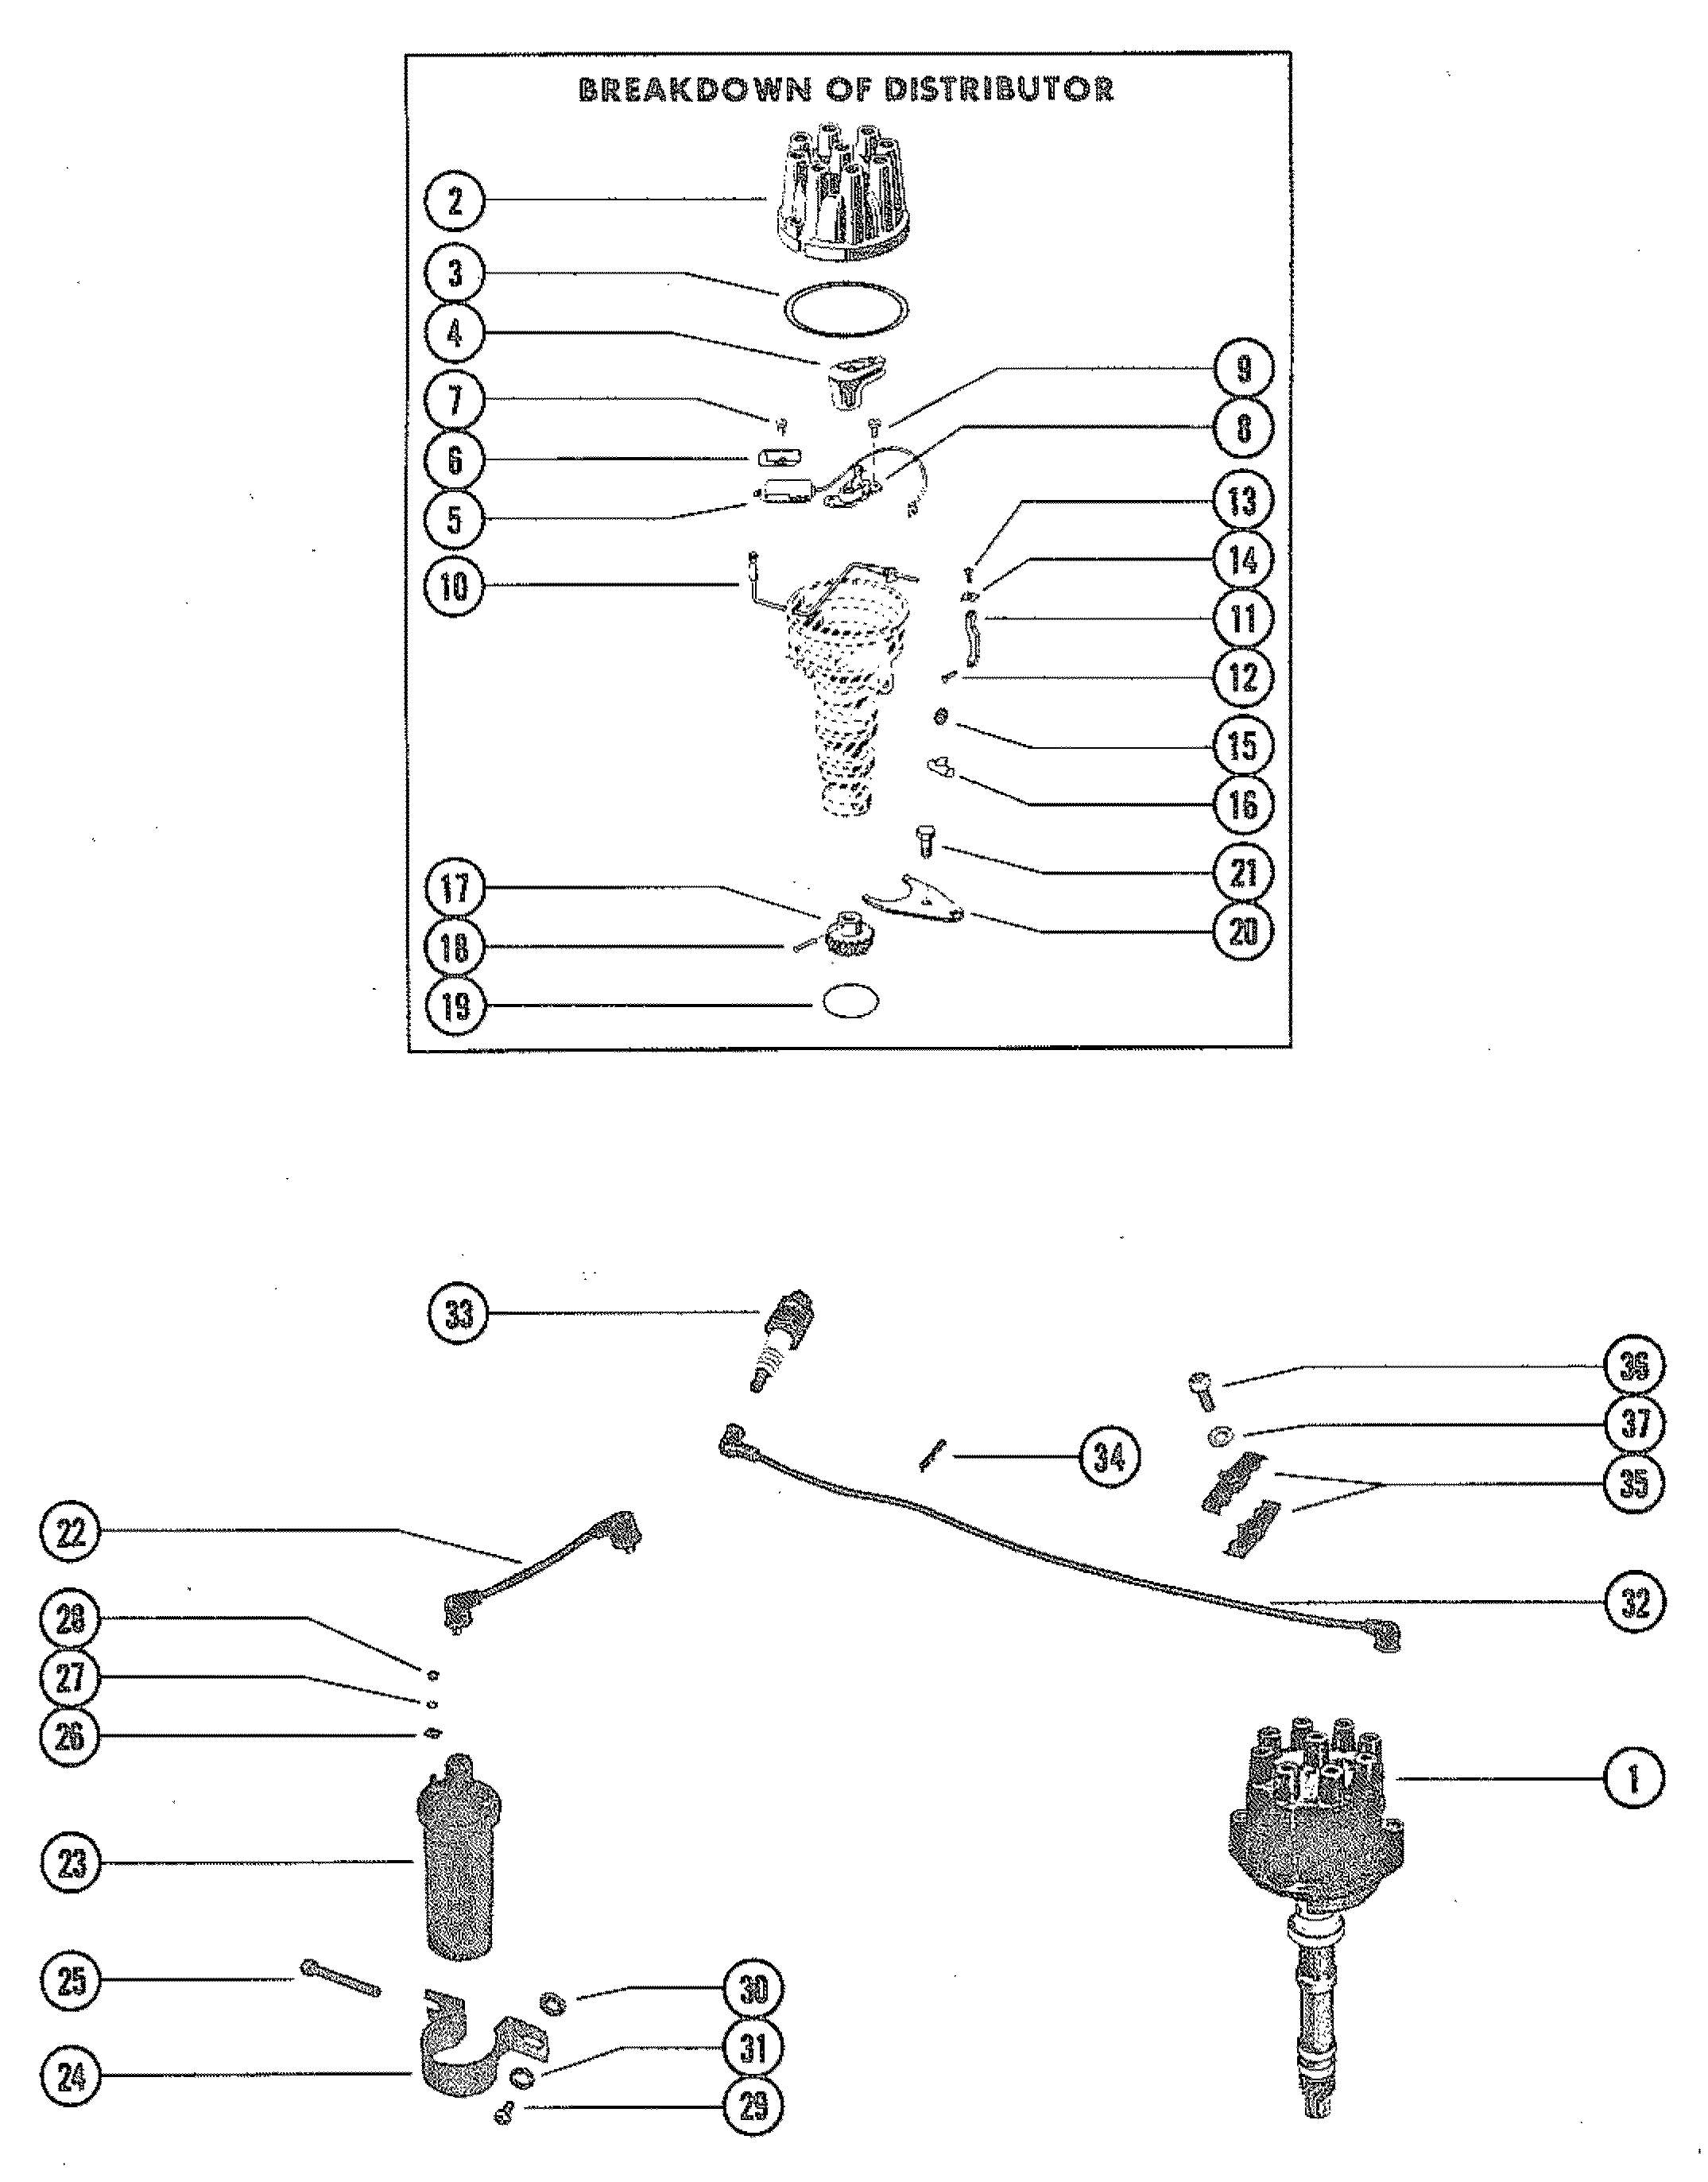 30 Mercruiser Wiring Diagram 1979 228 Will Be A Harness 330 Gm 454 V 8 1977 1981 Rh Mercury Lakor Com